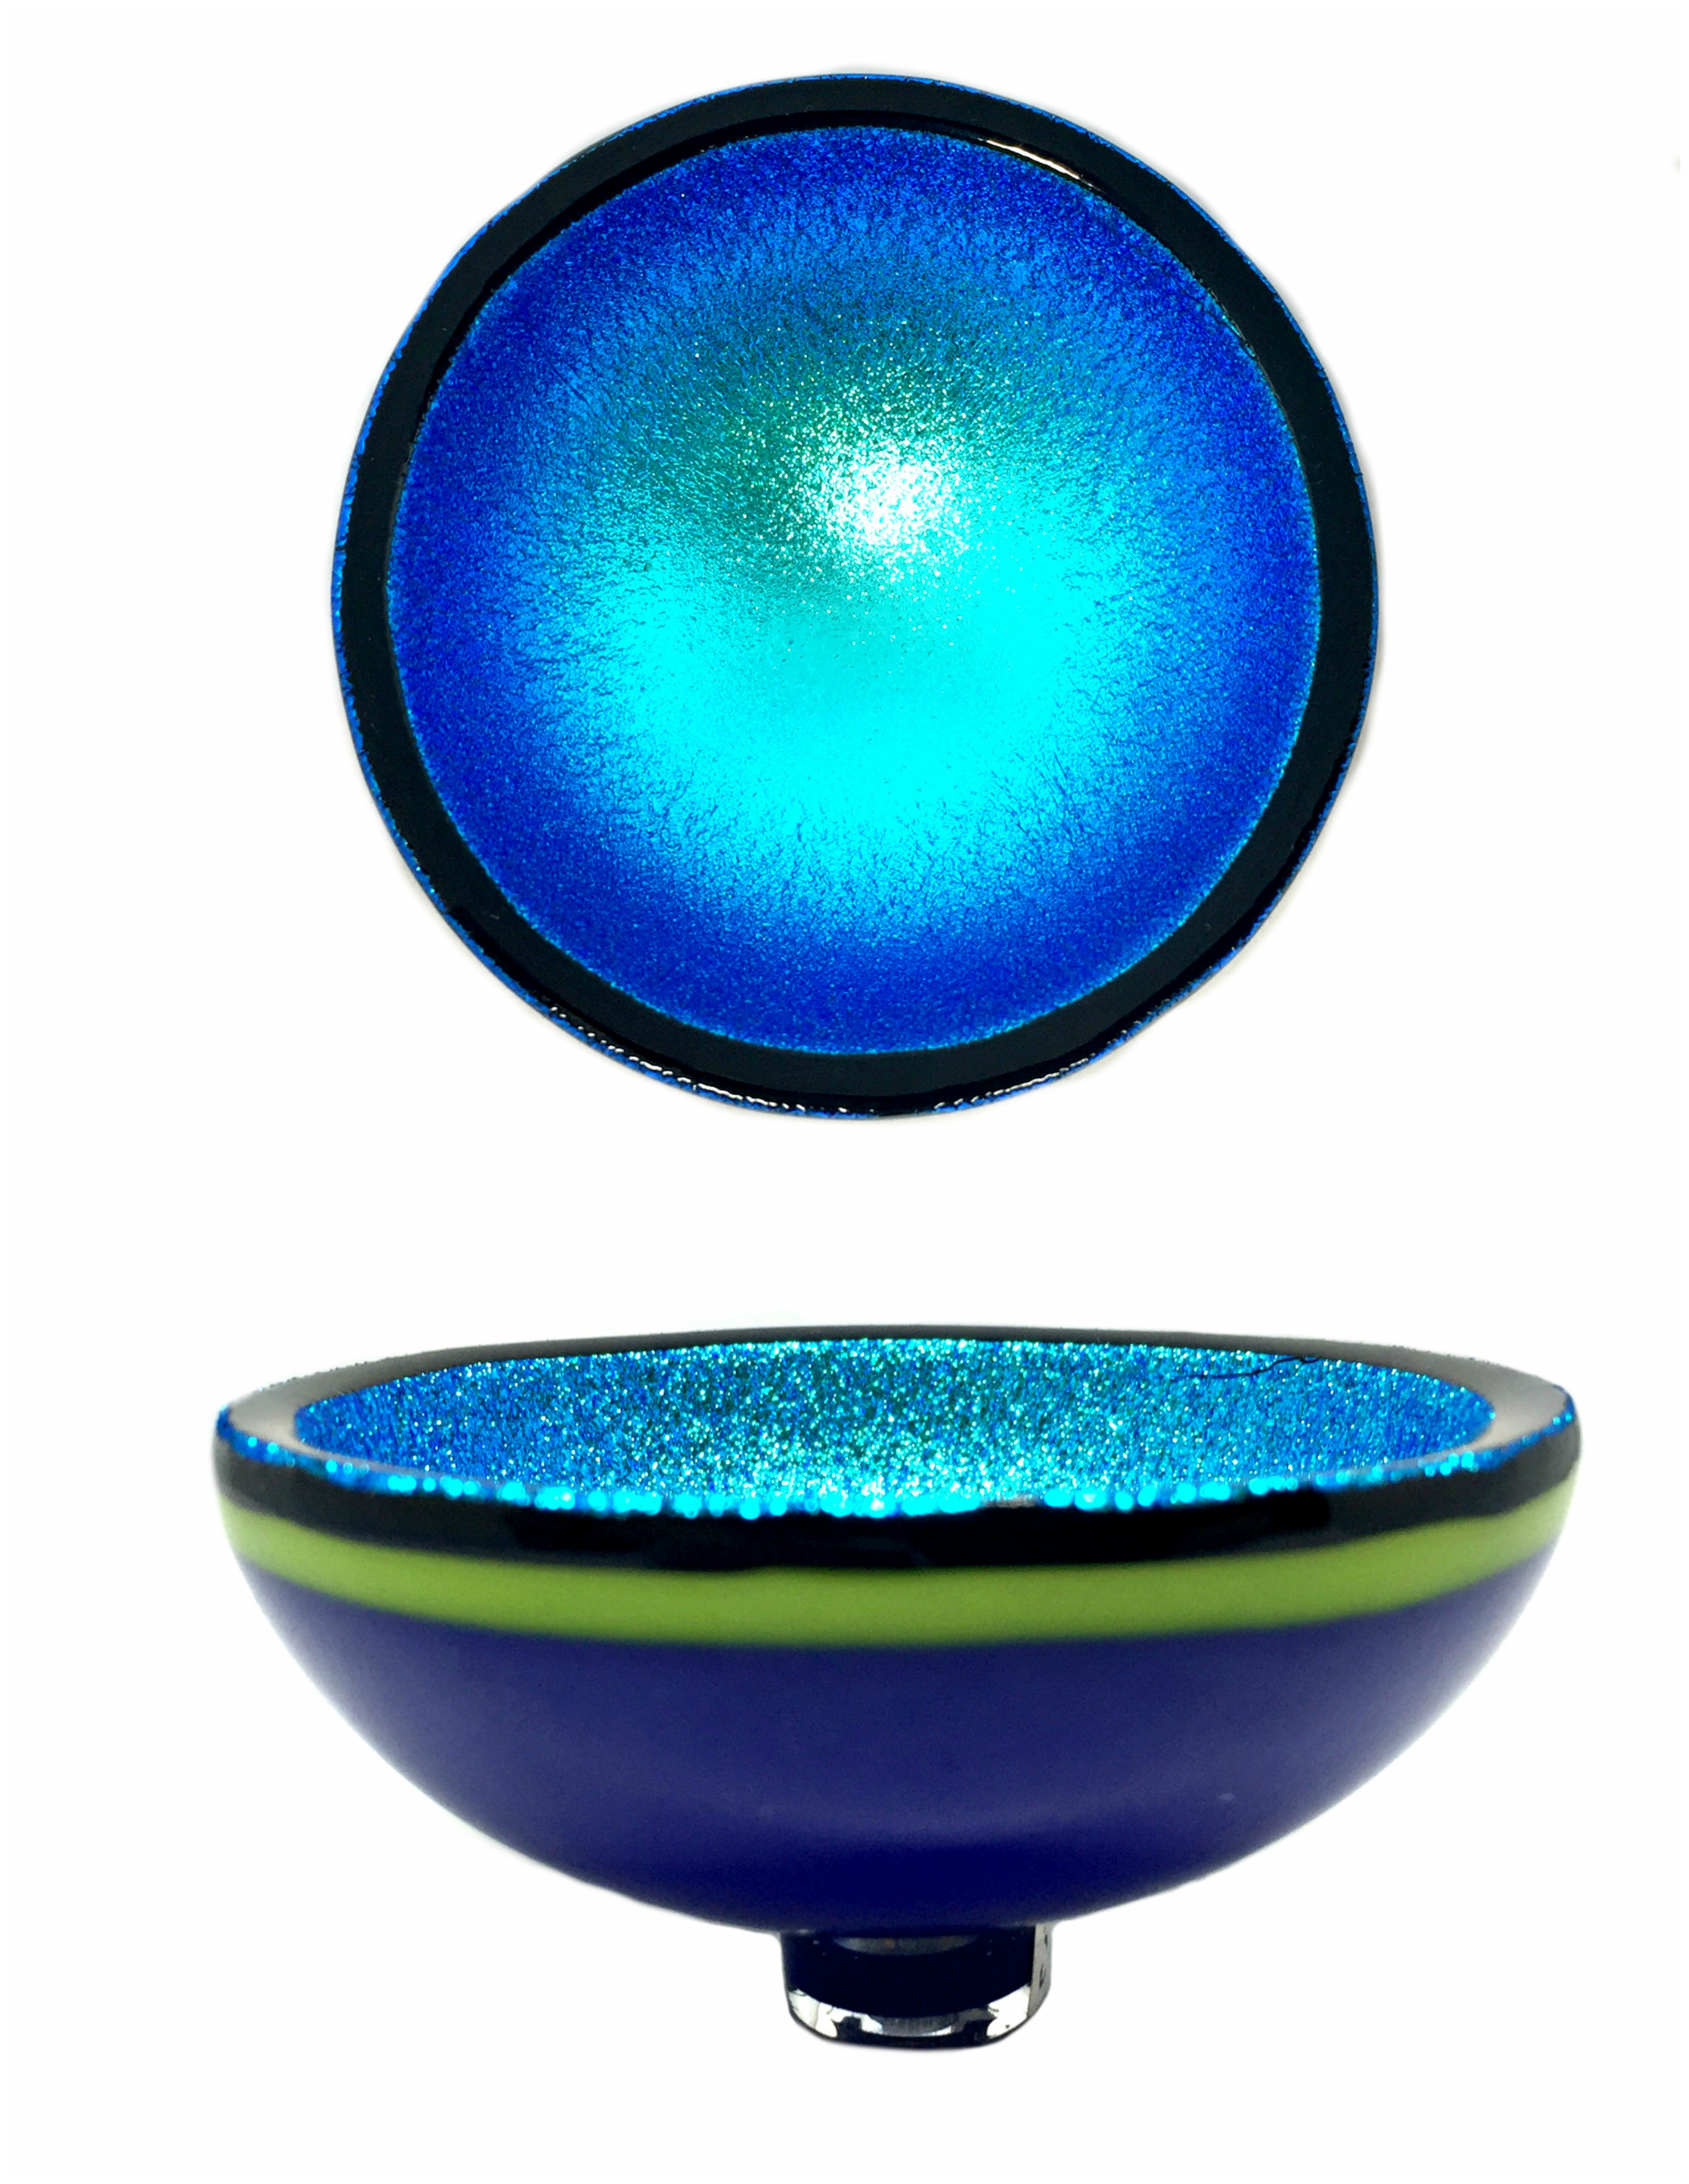 Thing of Beauty 1251 glass bowl by Jo Ludwig | Effusion Art Gallery + Cast Glass Studio, Invermere BC